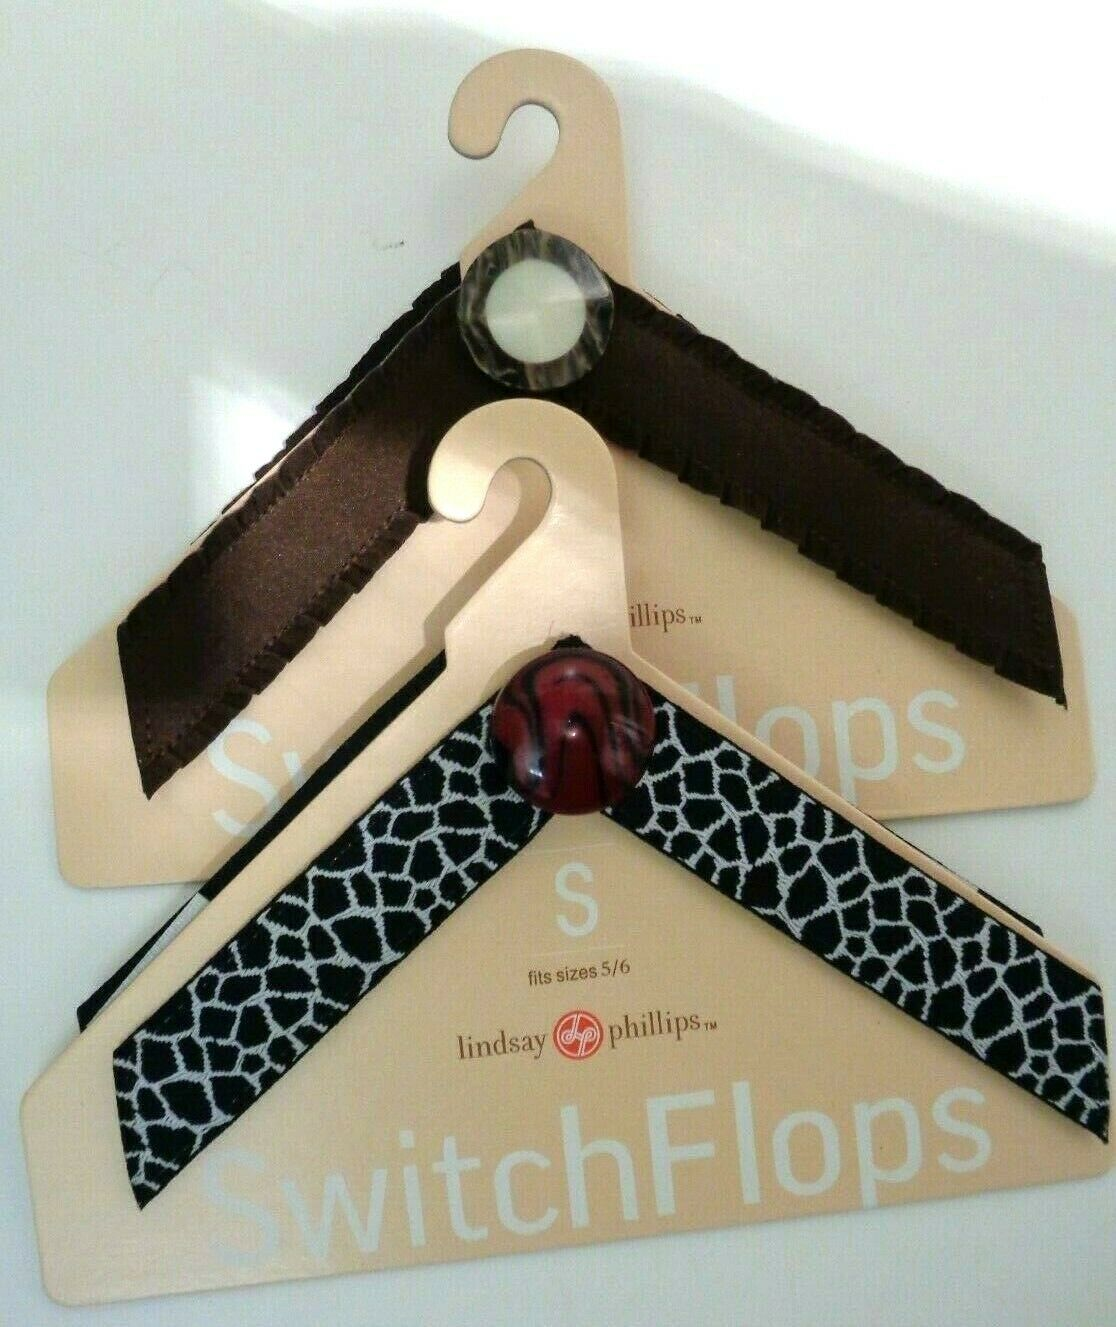 LINDSAY PHILLIPS SWITCH FLOP STRAPS Sz S Fitts 5/6 Switch Flops Sandals Lot of 2